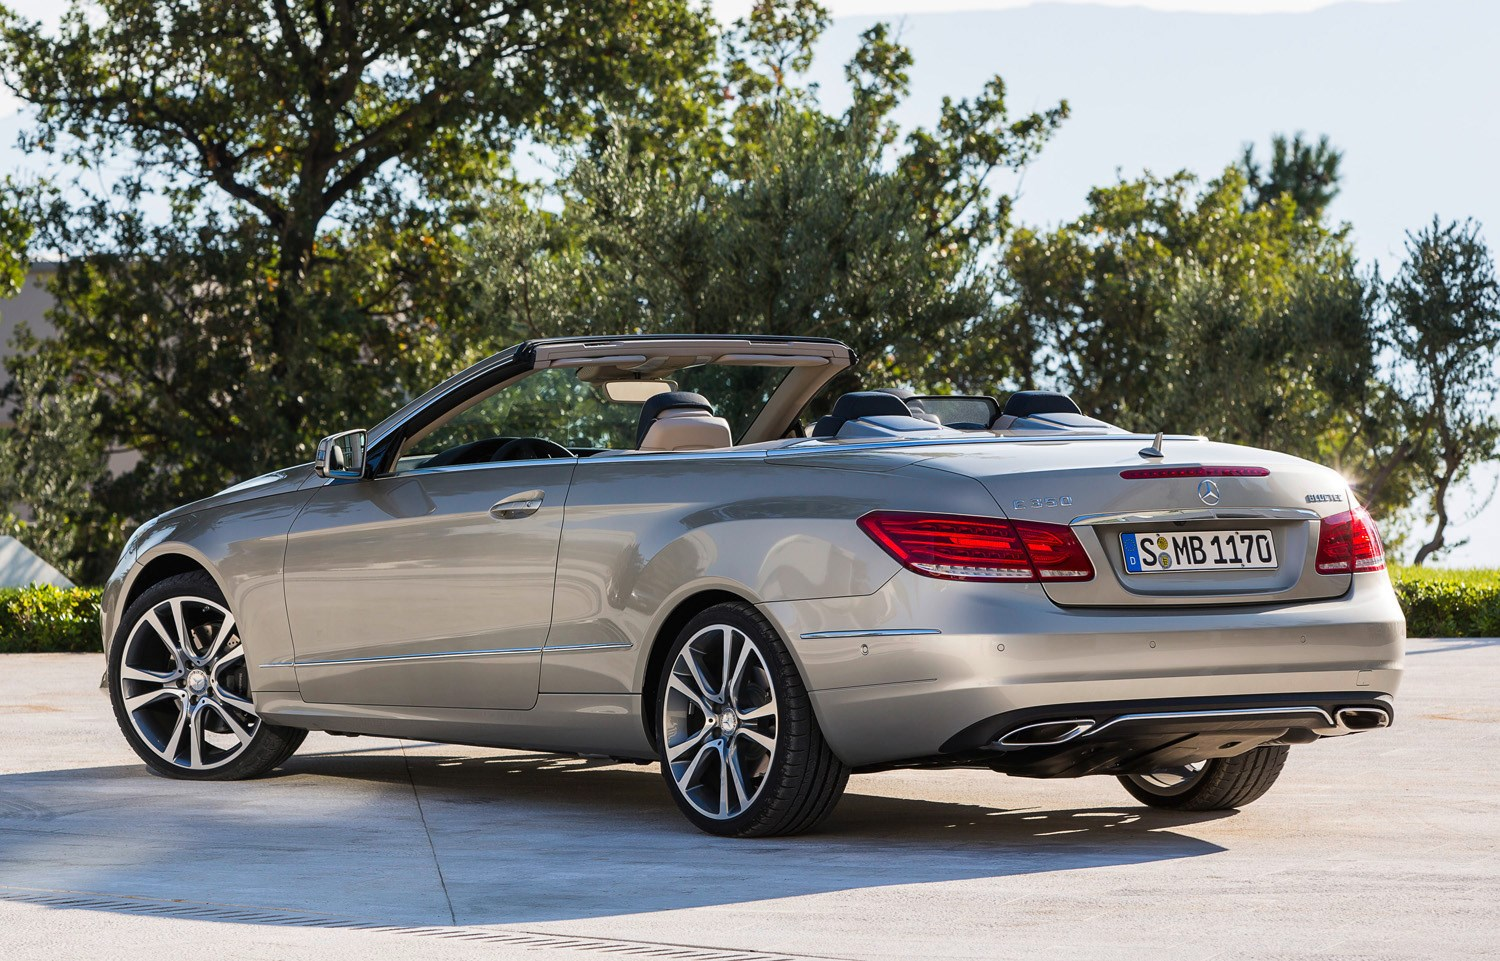 Mercedes benz e class cabriolet 2010 2017 running for How much does a mercedes benz cost